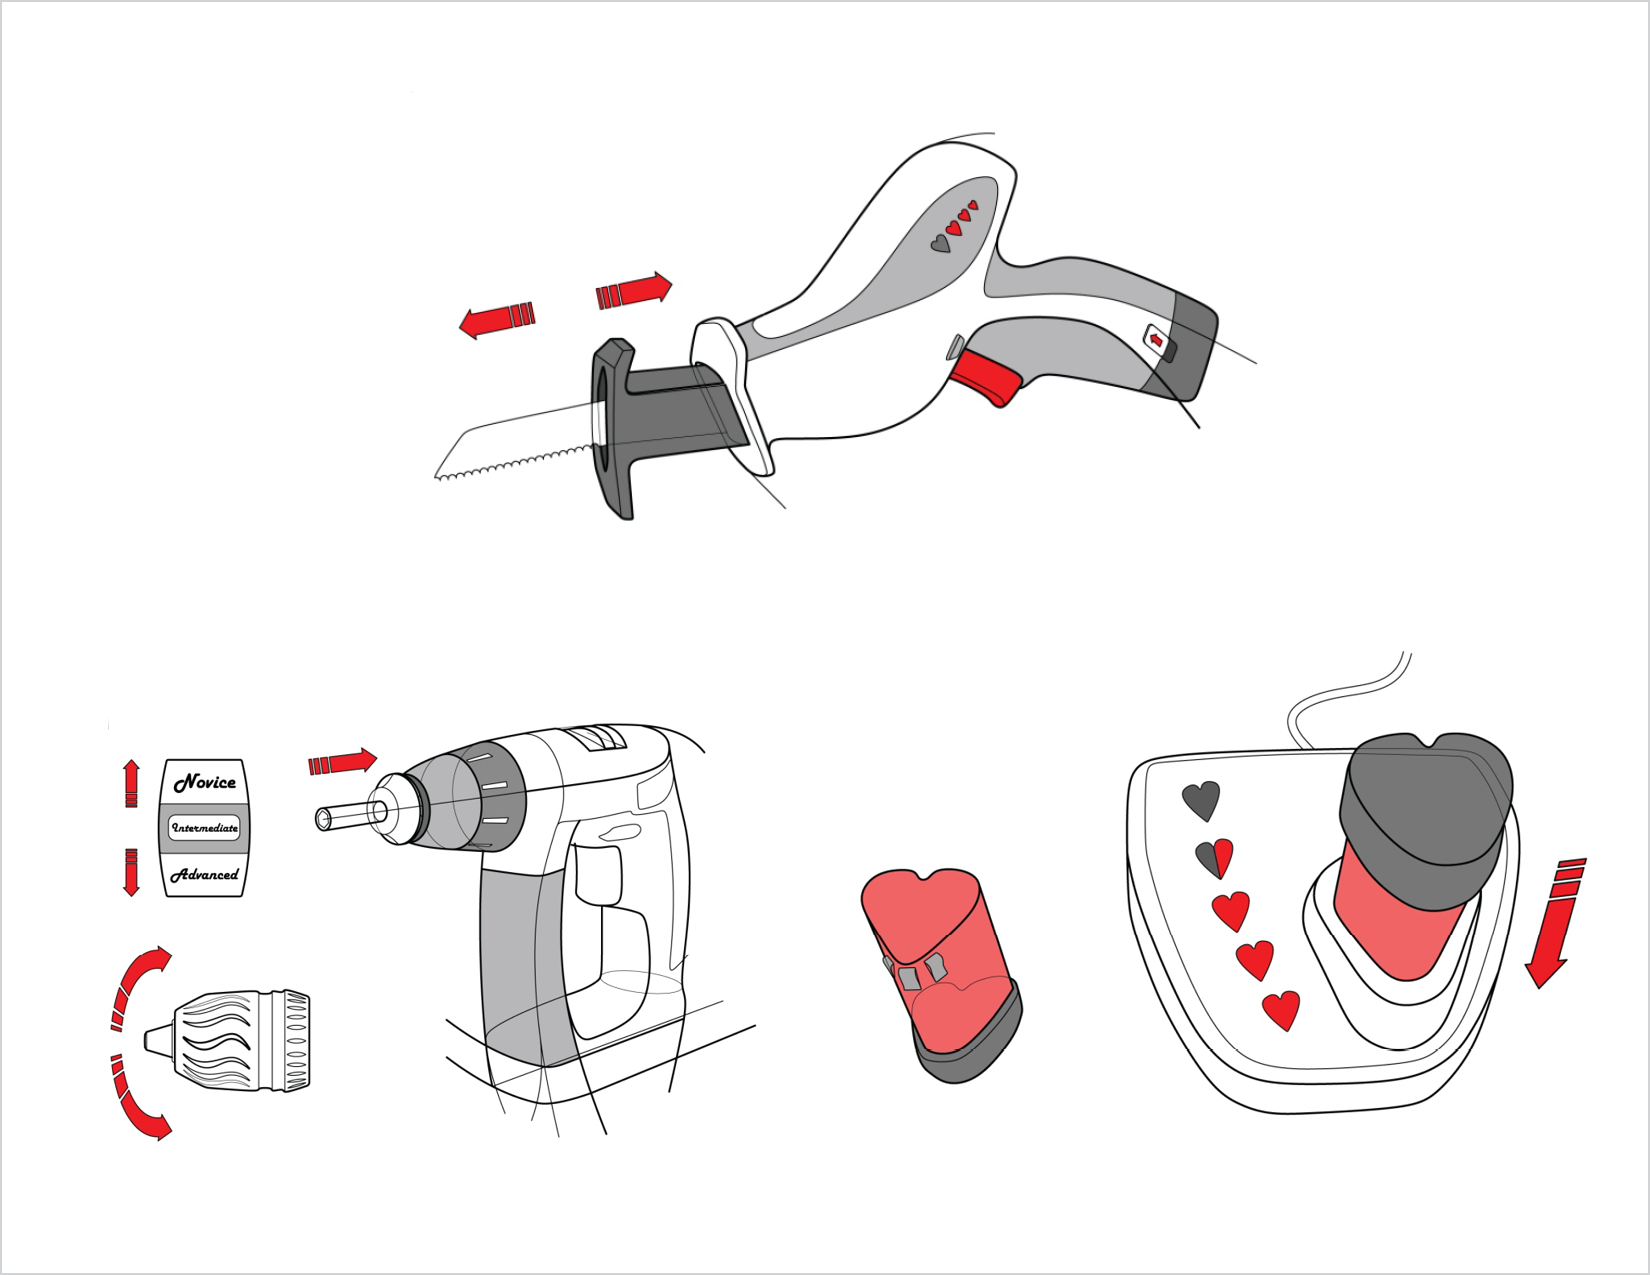 custom tools like a battery operated cutter that can be operated in both directions, a hand-held power tool with different difficulty levels allow a beginner to ease in with speed and power of the tool, and a heart shaped battery station to evoke familiar imageryfor the demographic.